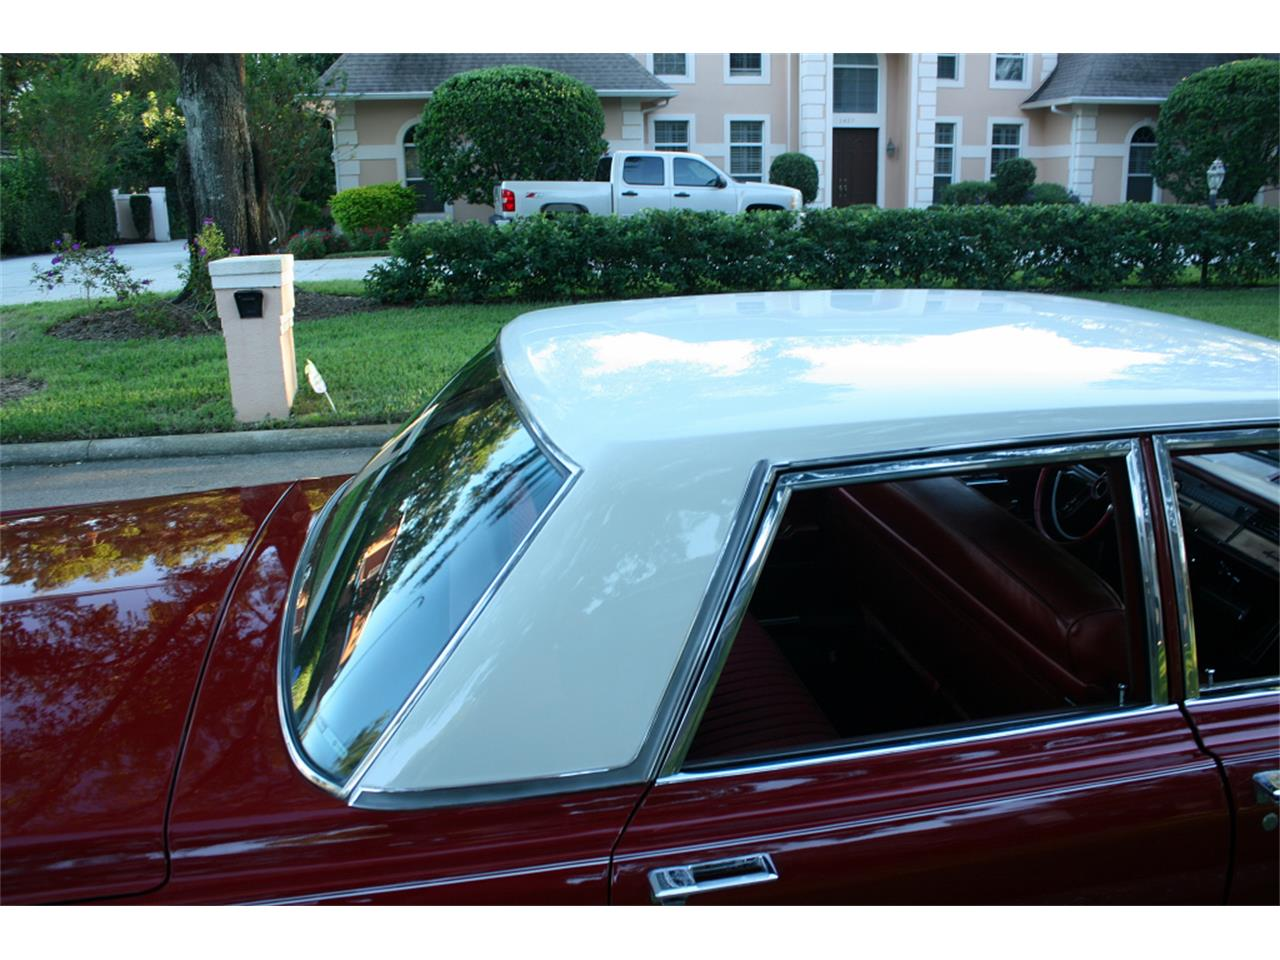 1968 Chrysler Imperial for sale in Lakeland, FL – photo 22